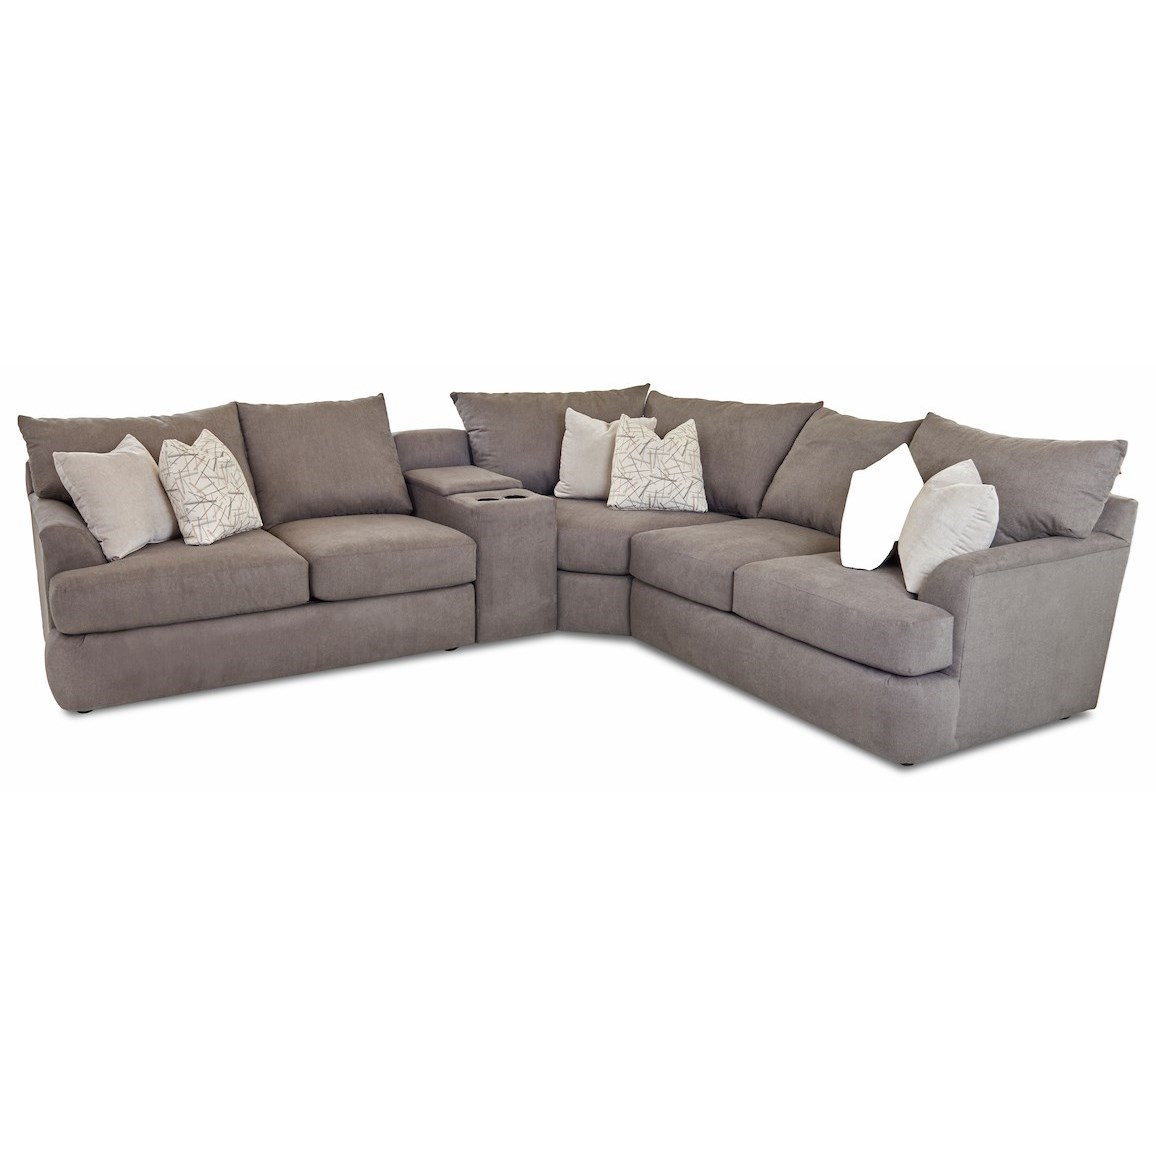 Findley 4-Pc Sectional Sofa with Cupholder Console by Klaussner at Johnny Janosik